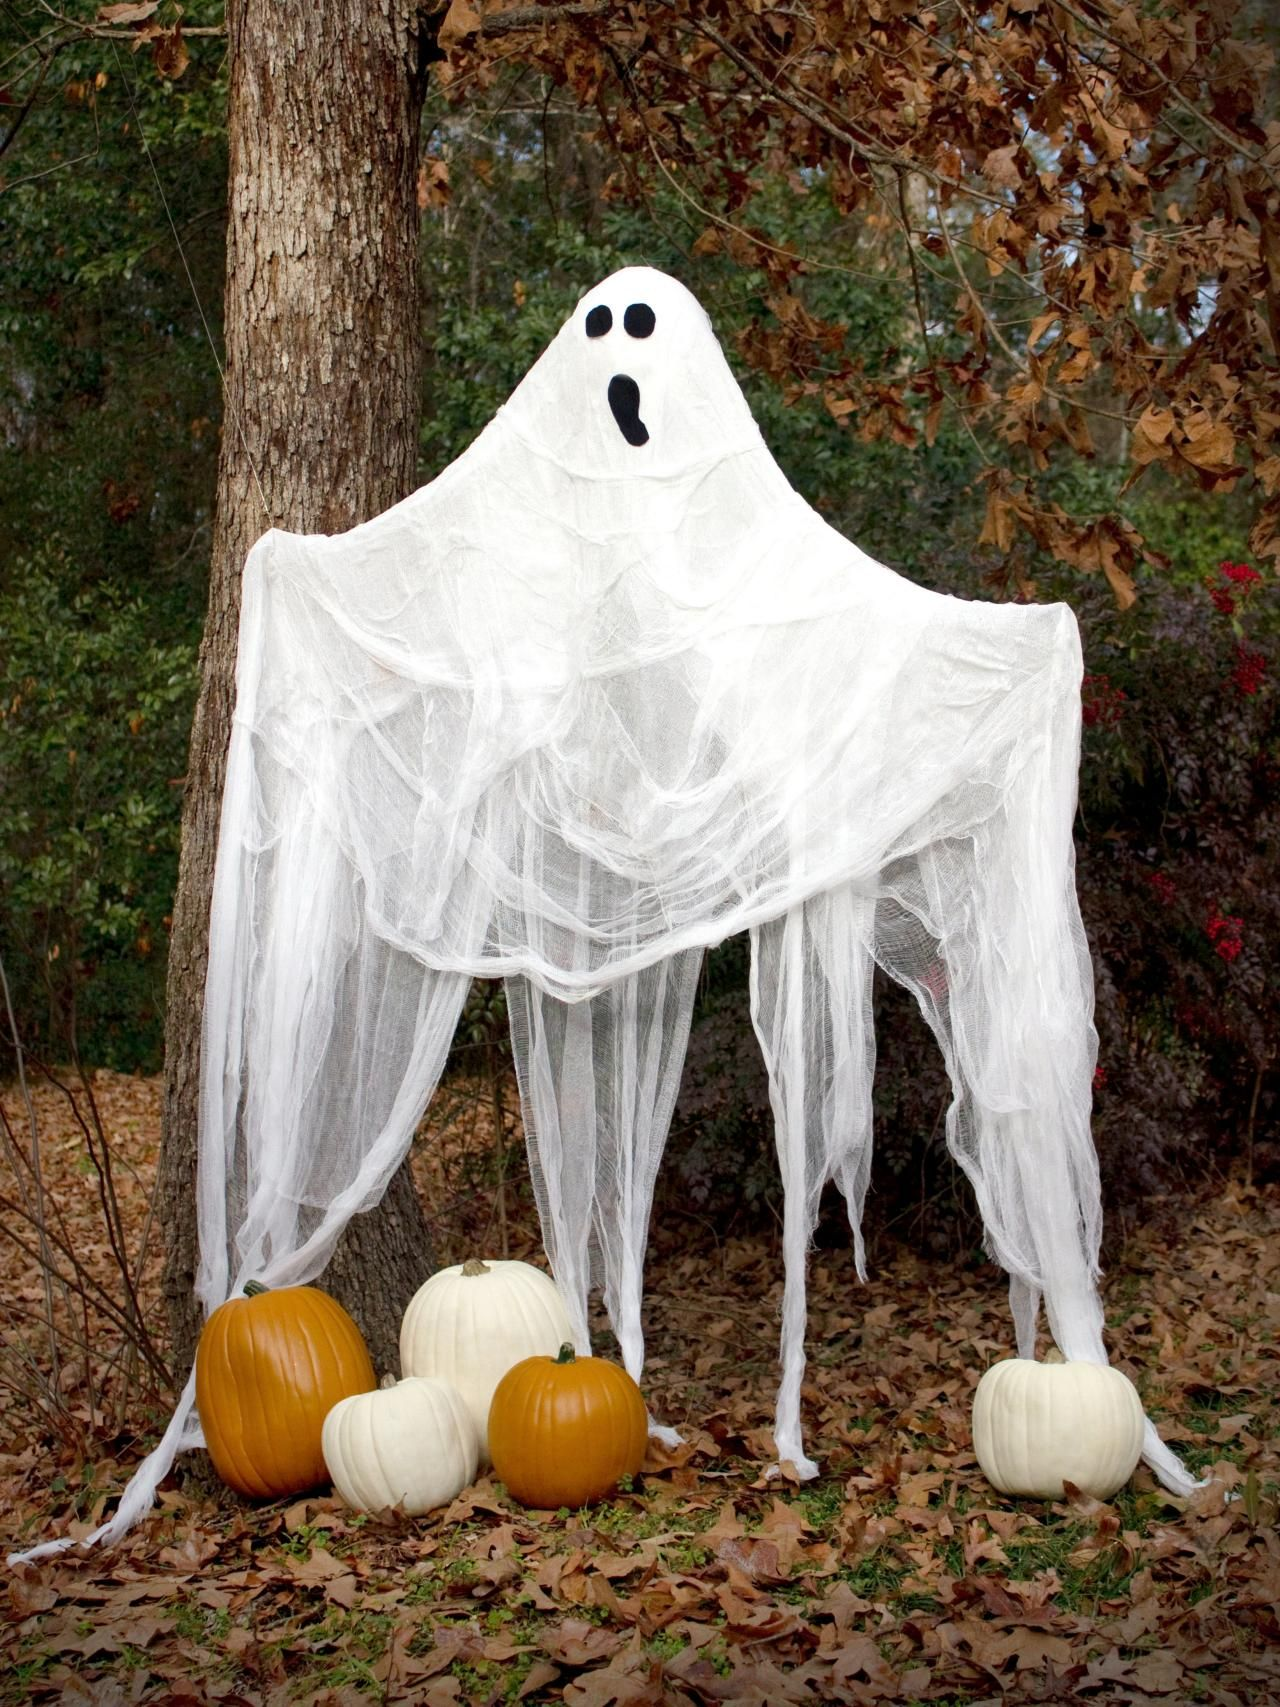 Halloween Decorations Ghosts halloween decorations for camp - diy outdoor halloween decorations